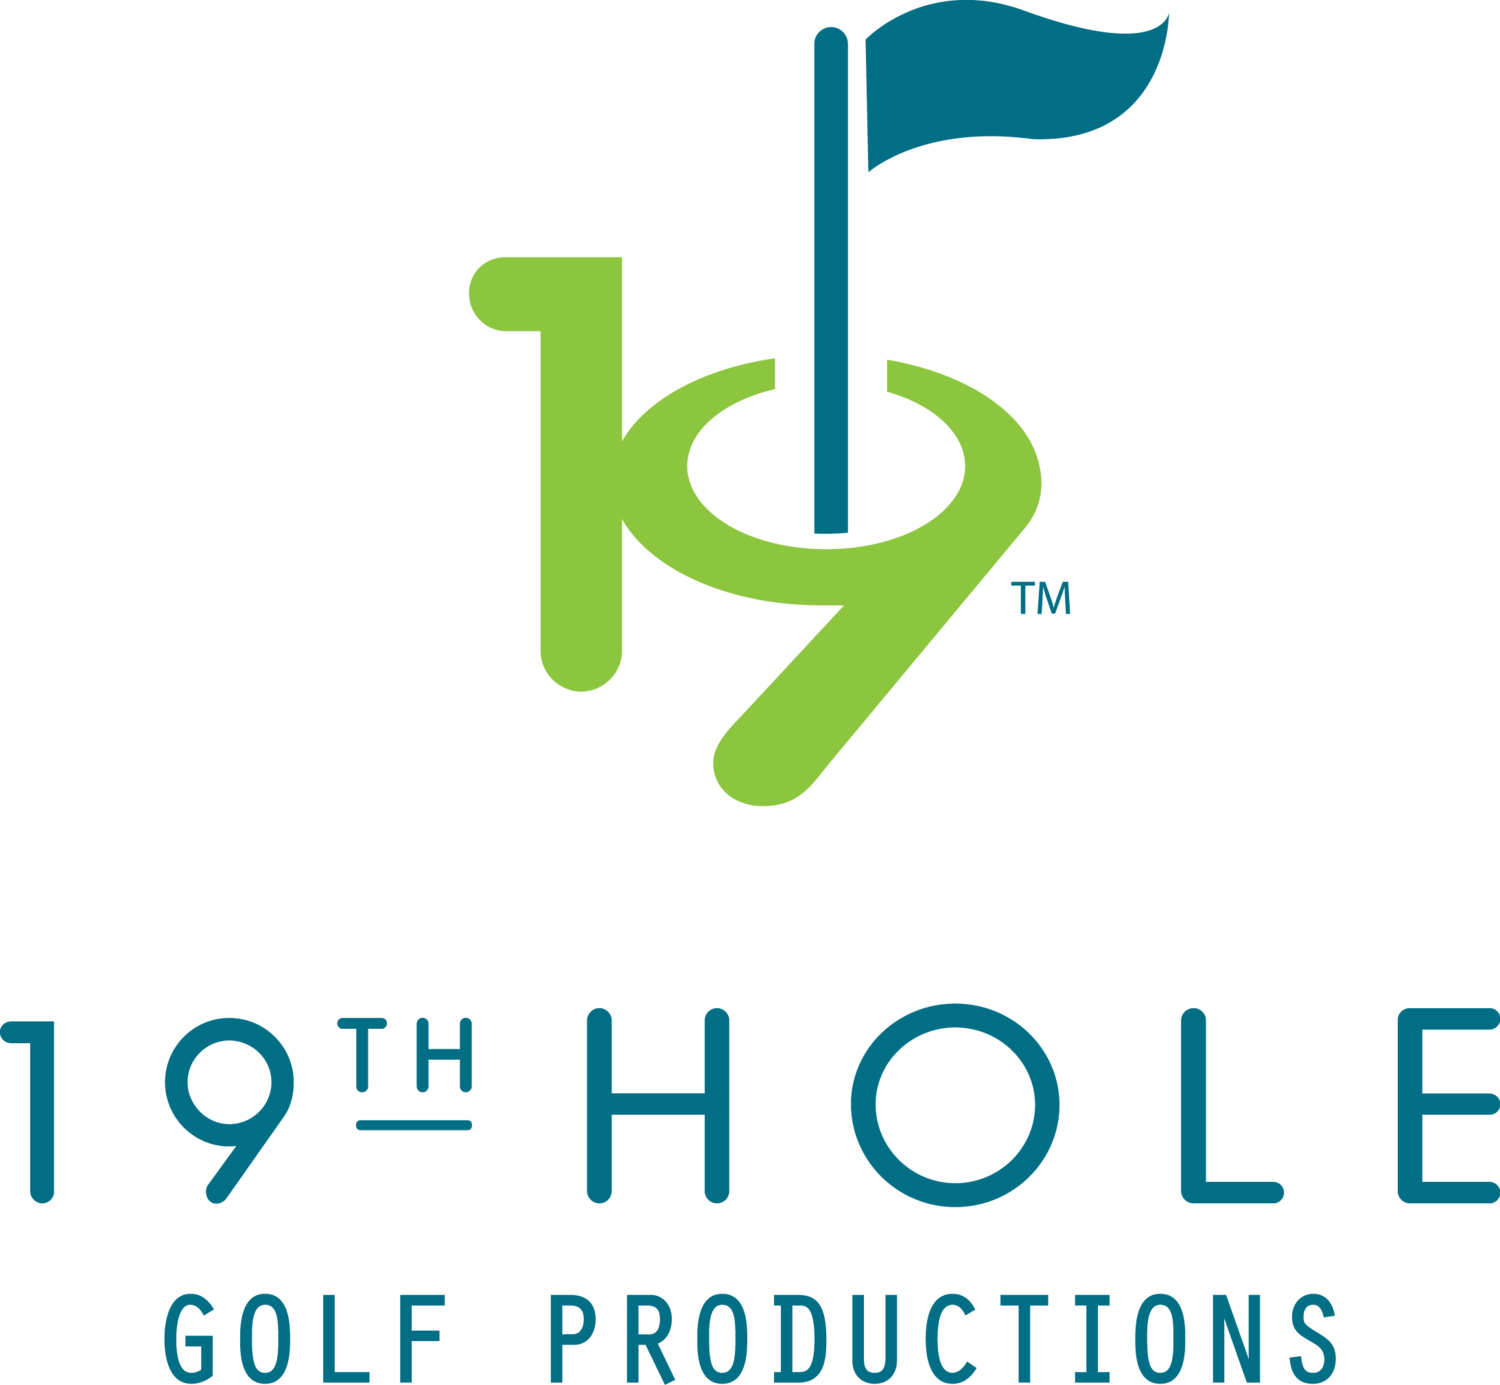 19th Hole Golf Productions